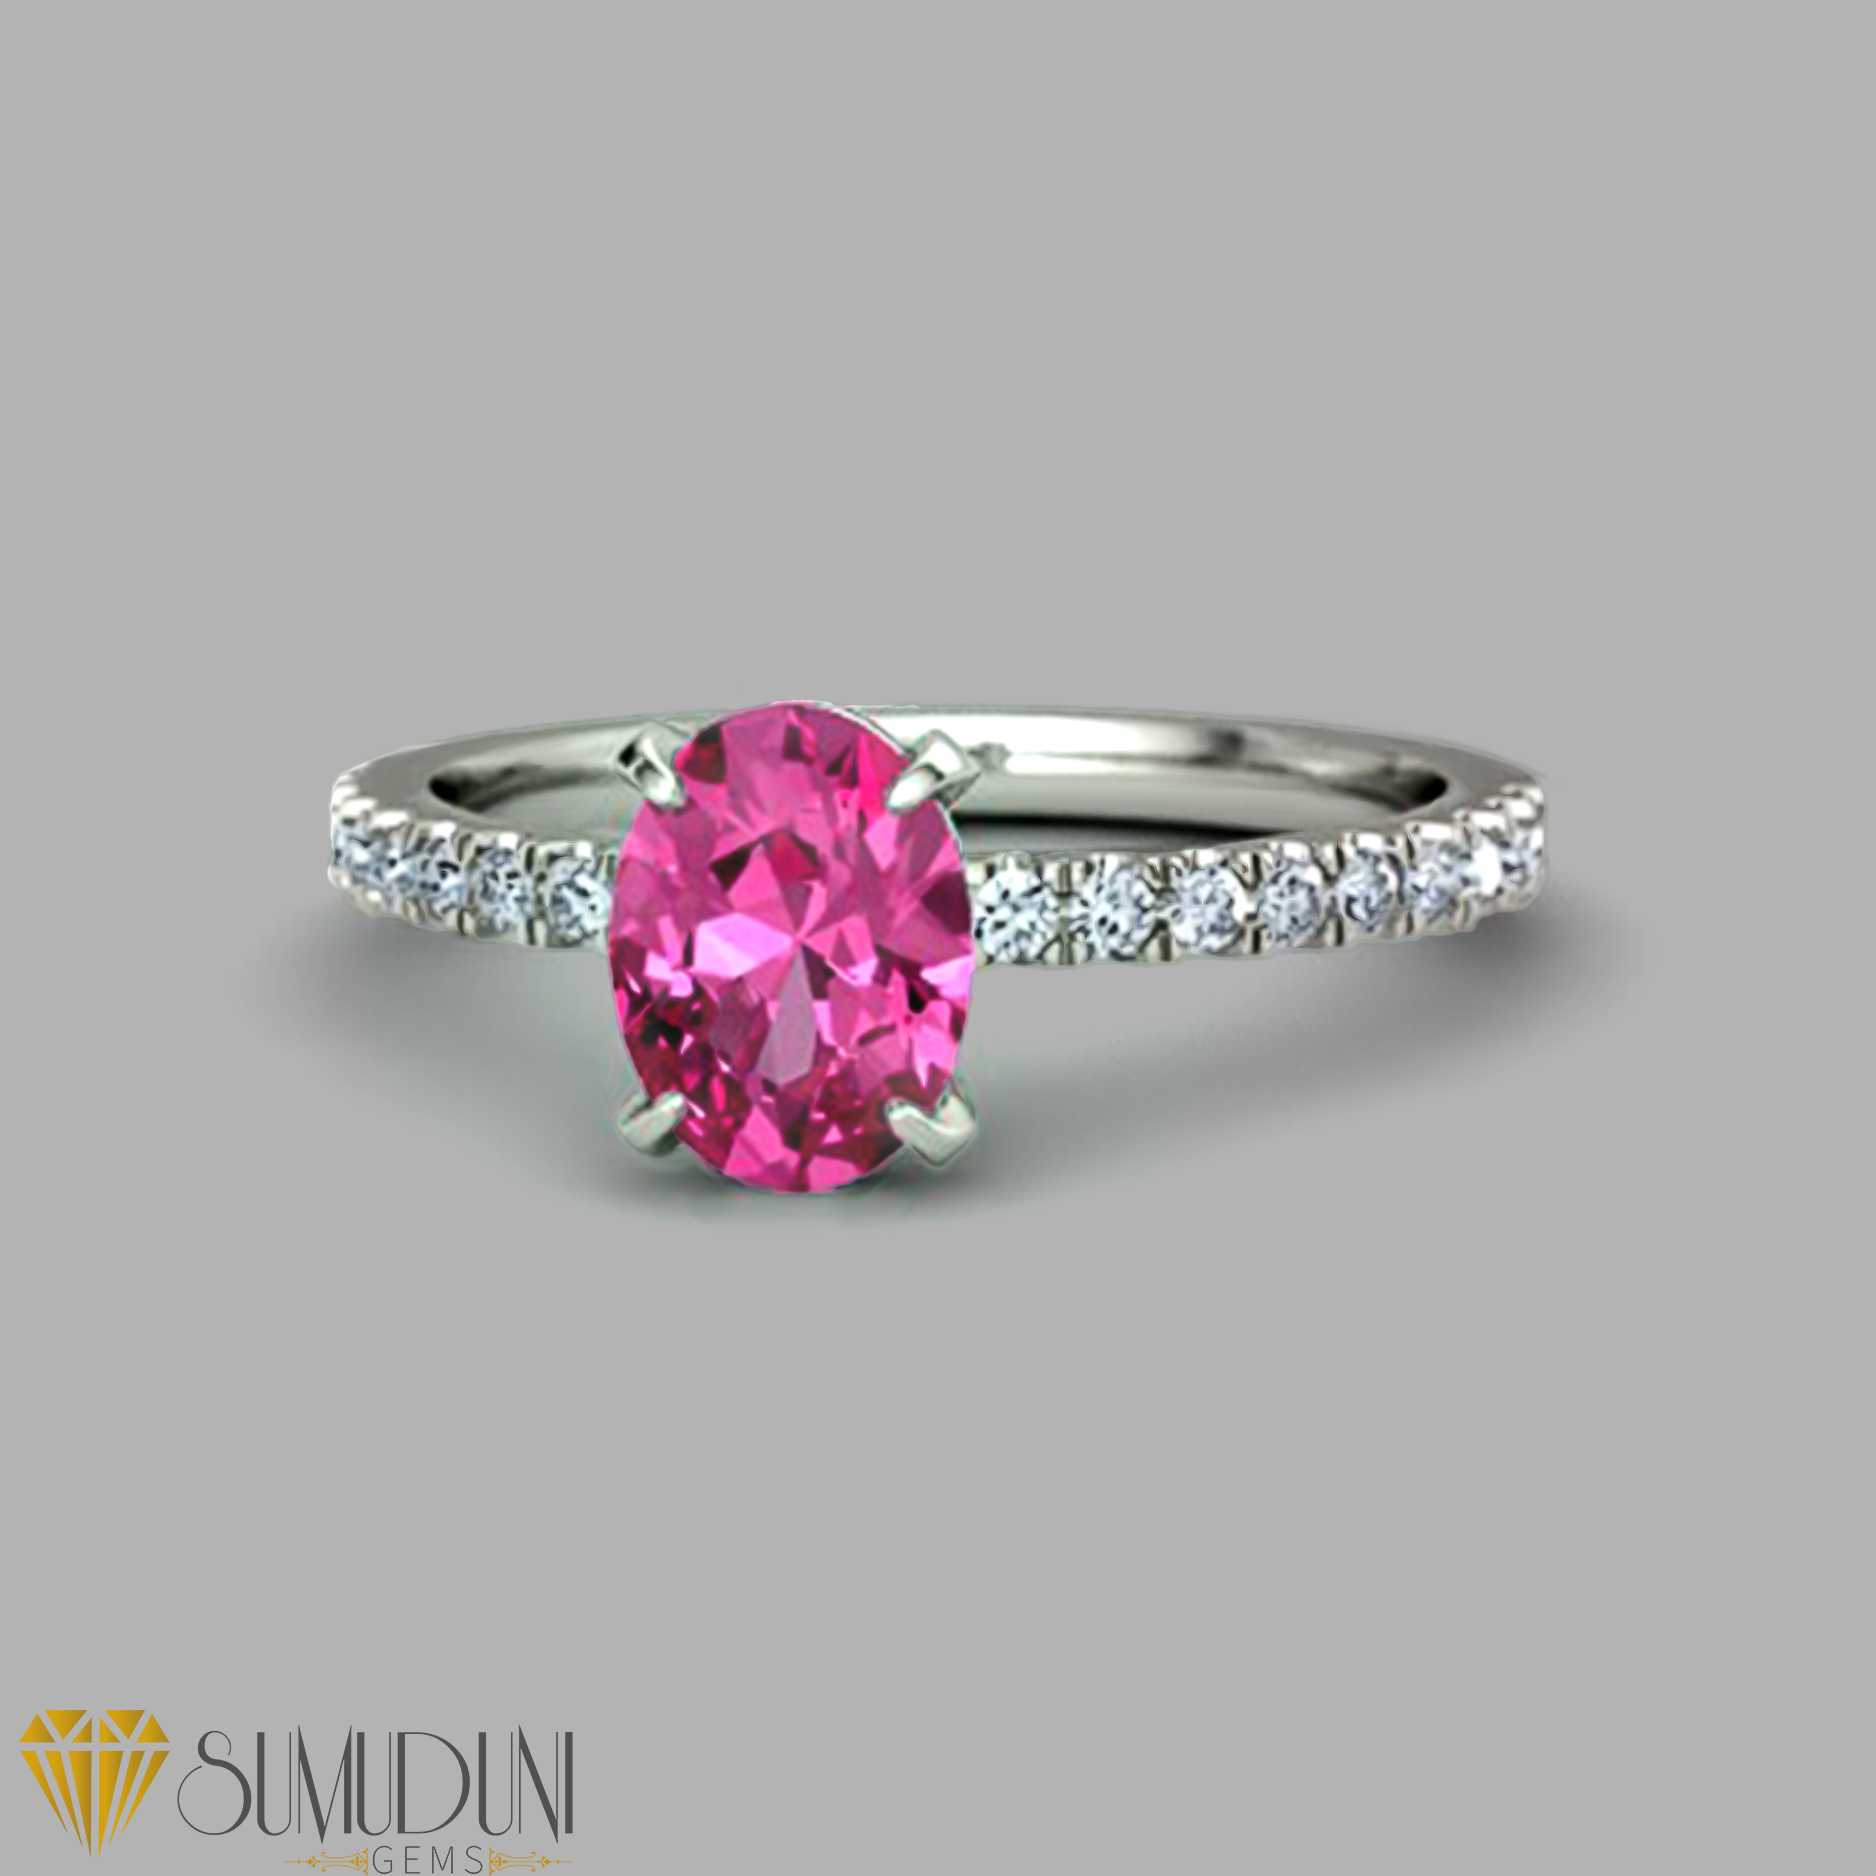 2 carat oval pink sapphire engagement ring